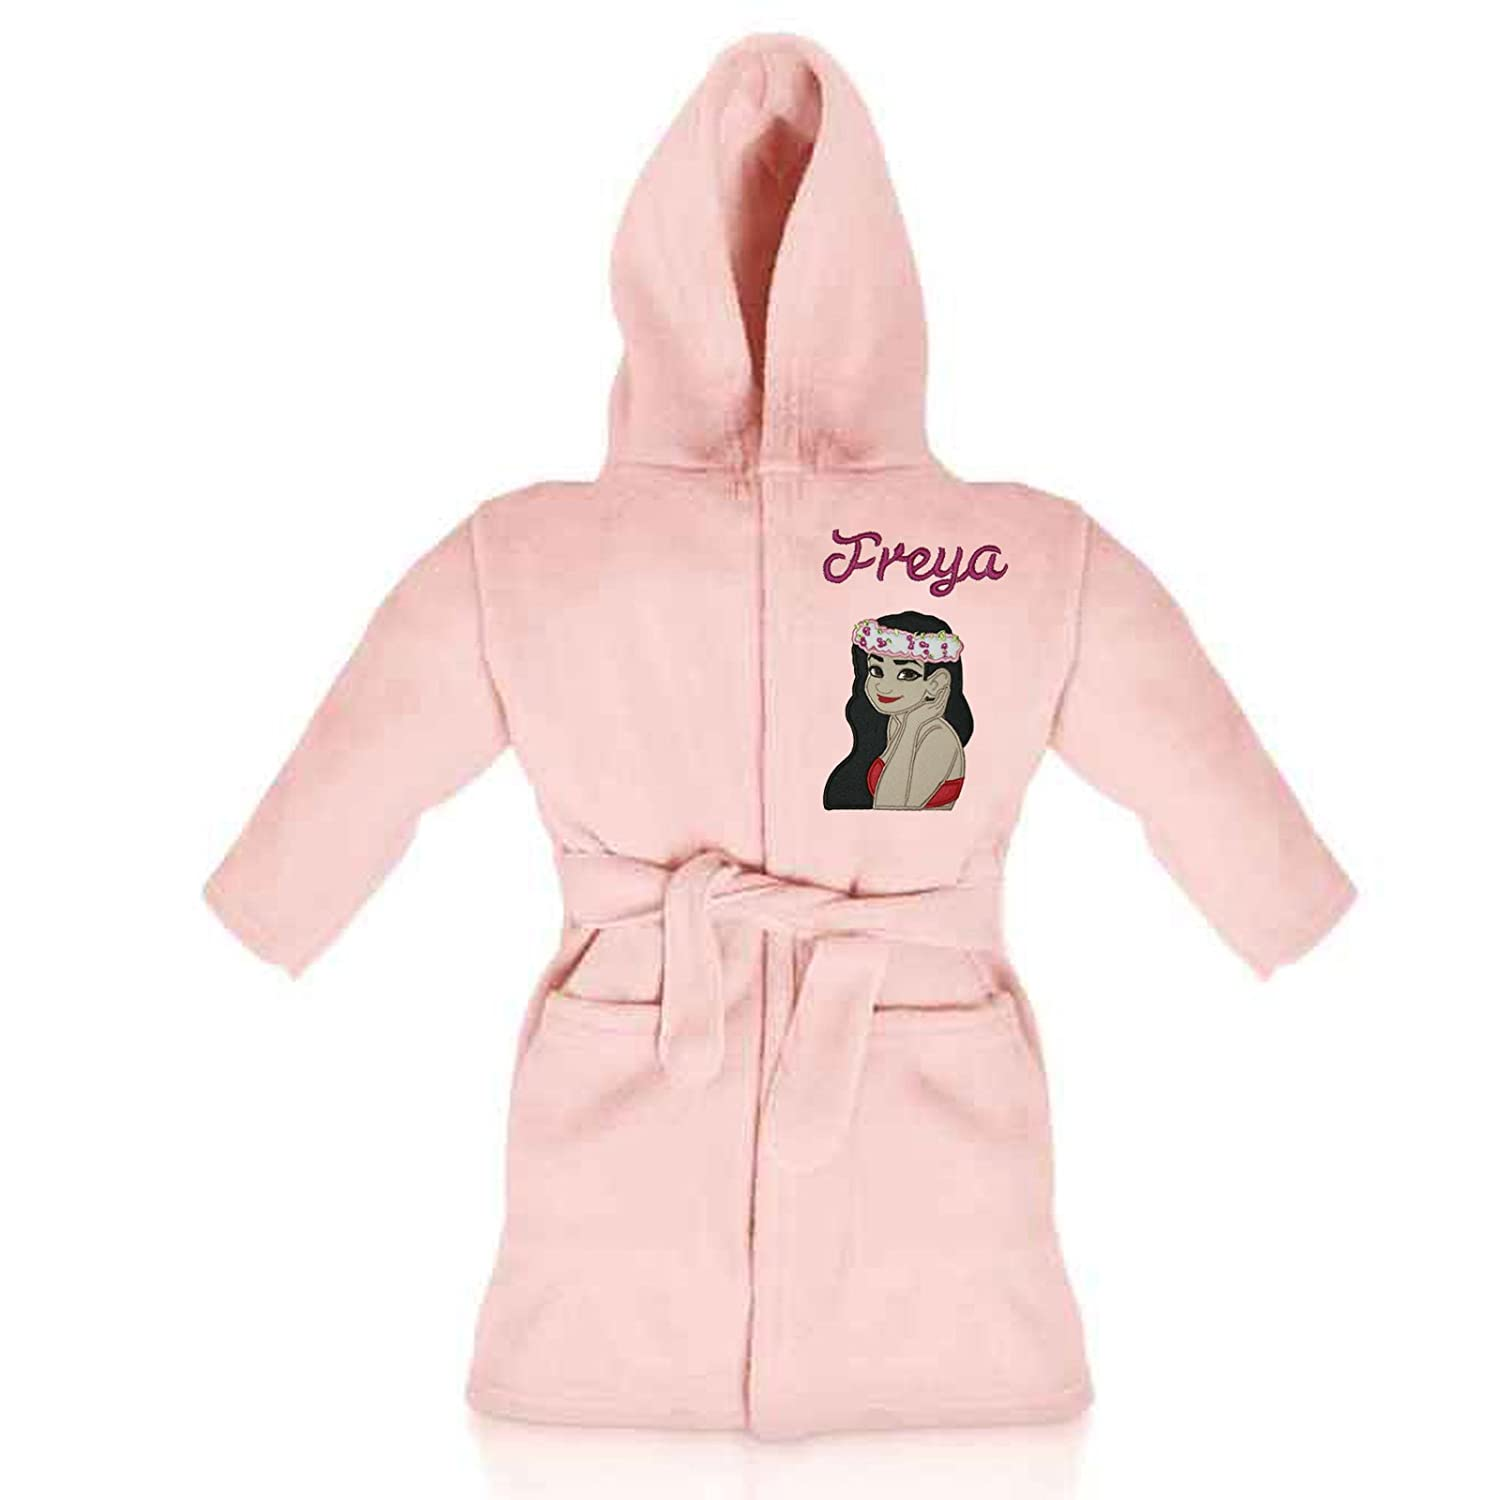 Oh Sew Simple Moana Island Princess Personalised & Applique Super Soft Fleece Dressing Gown/Bathrobe (Baby Pink - Moana 1)